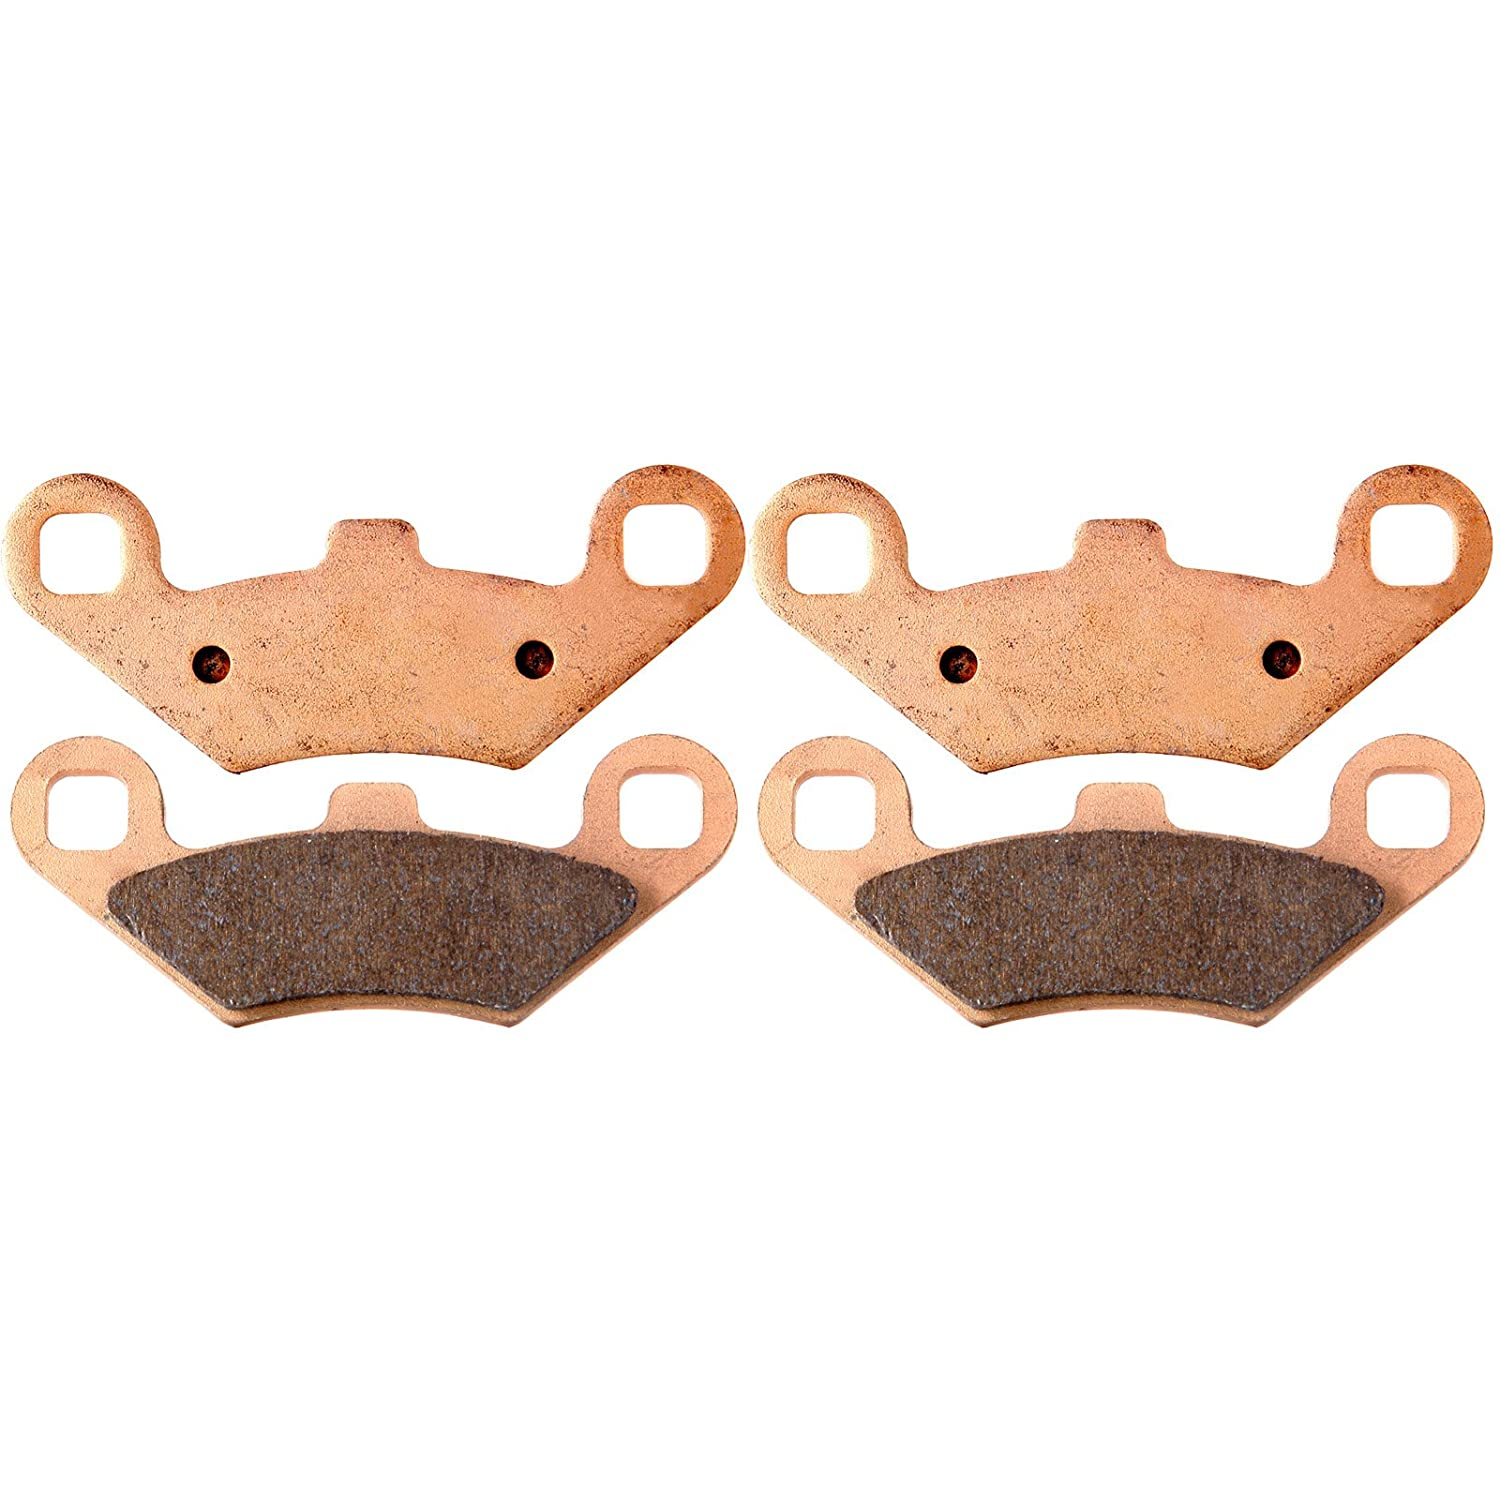 ECCPP FA159 Brake Pads Front Sintered Replacement Brake Pads Kits Fit for 2003-2012 Polaris